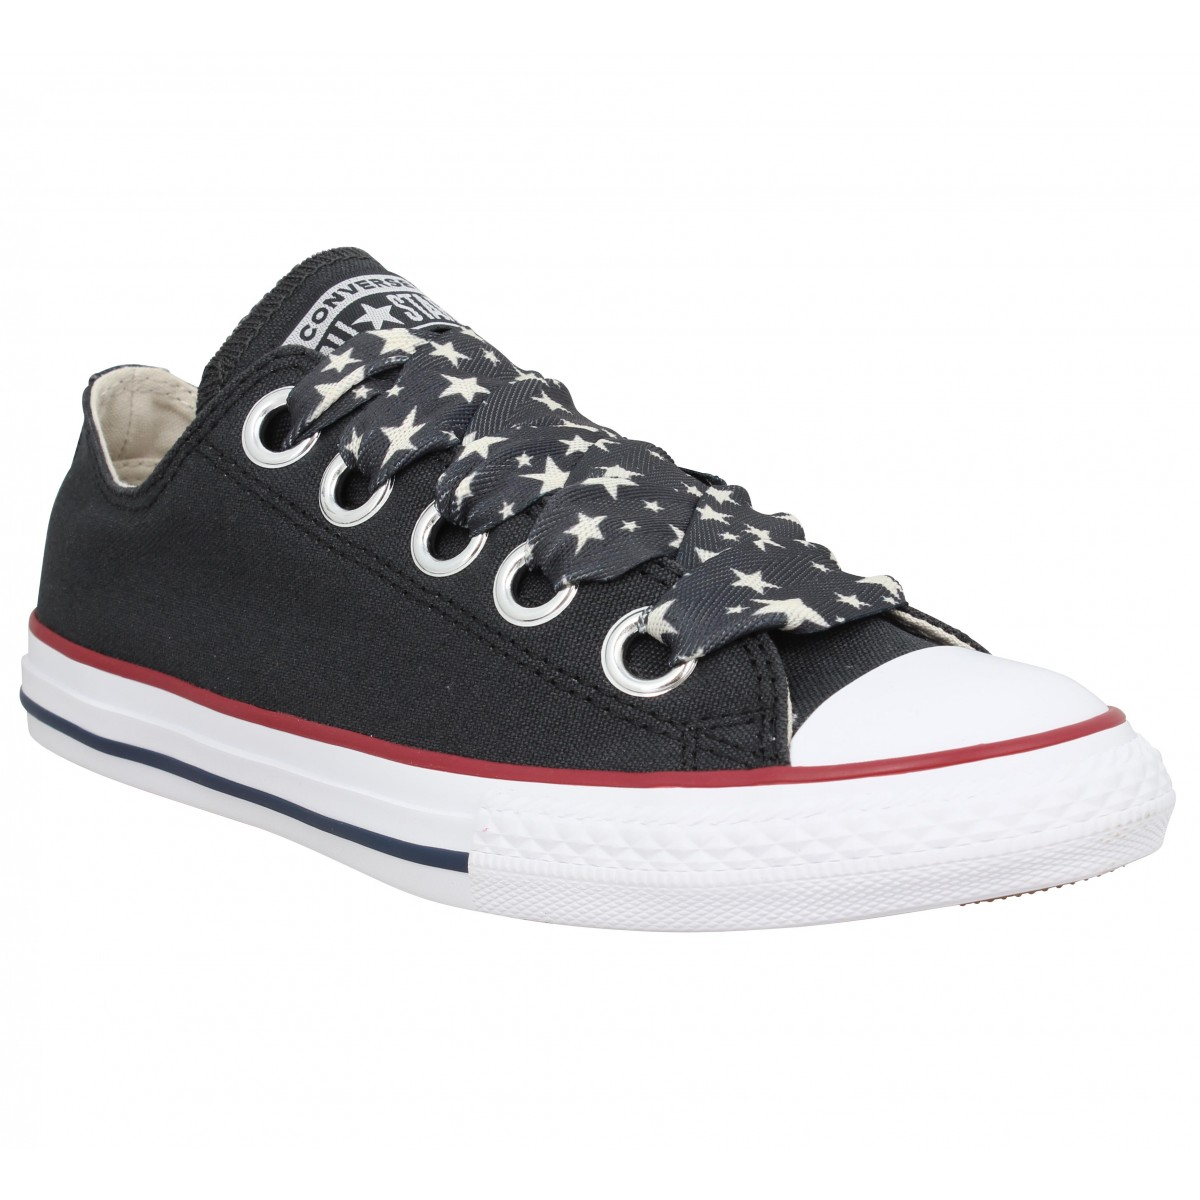 Baskets CONVERSE Chuck Taylor All Star Big Eyelets Femme Noir